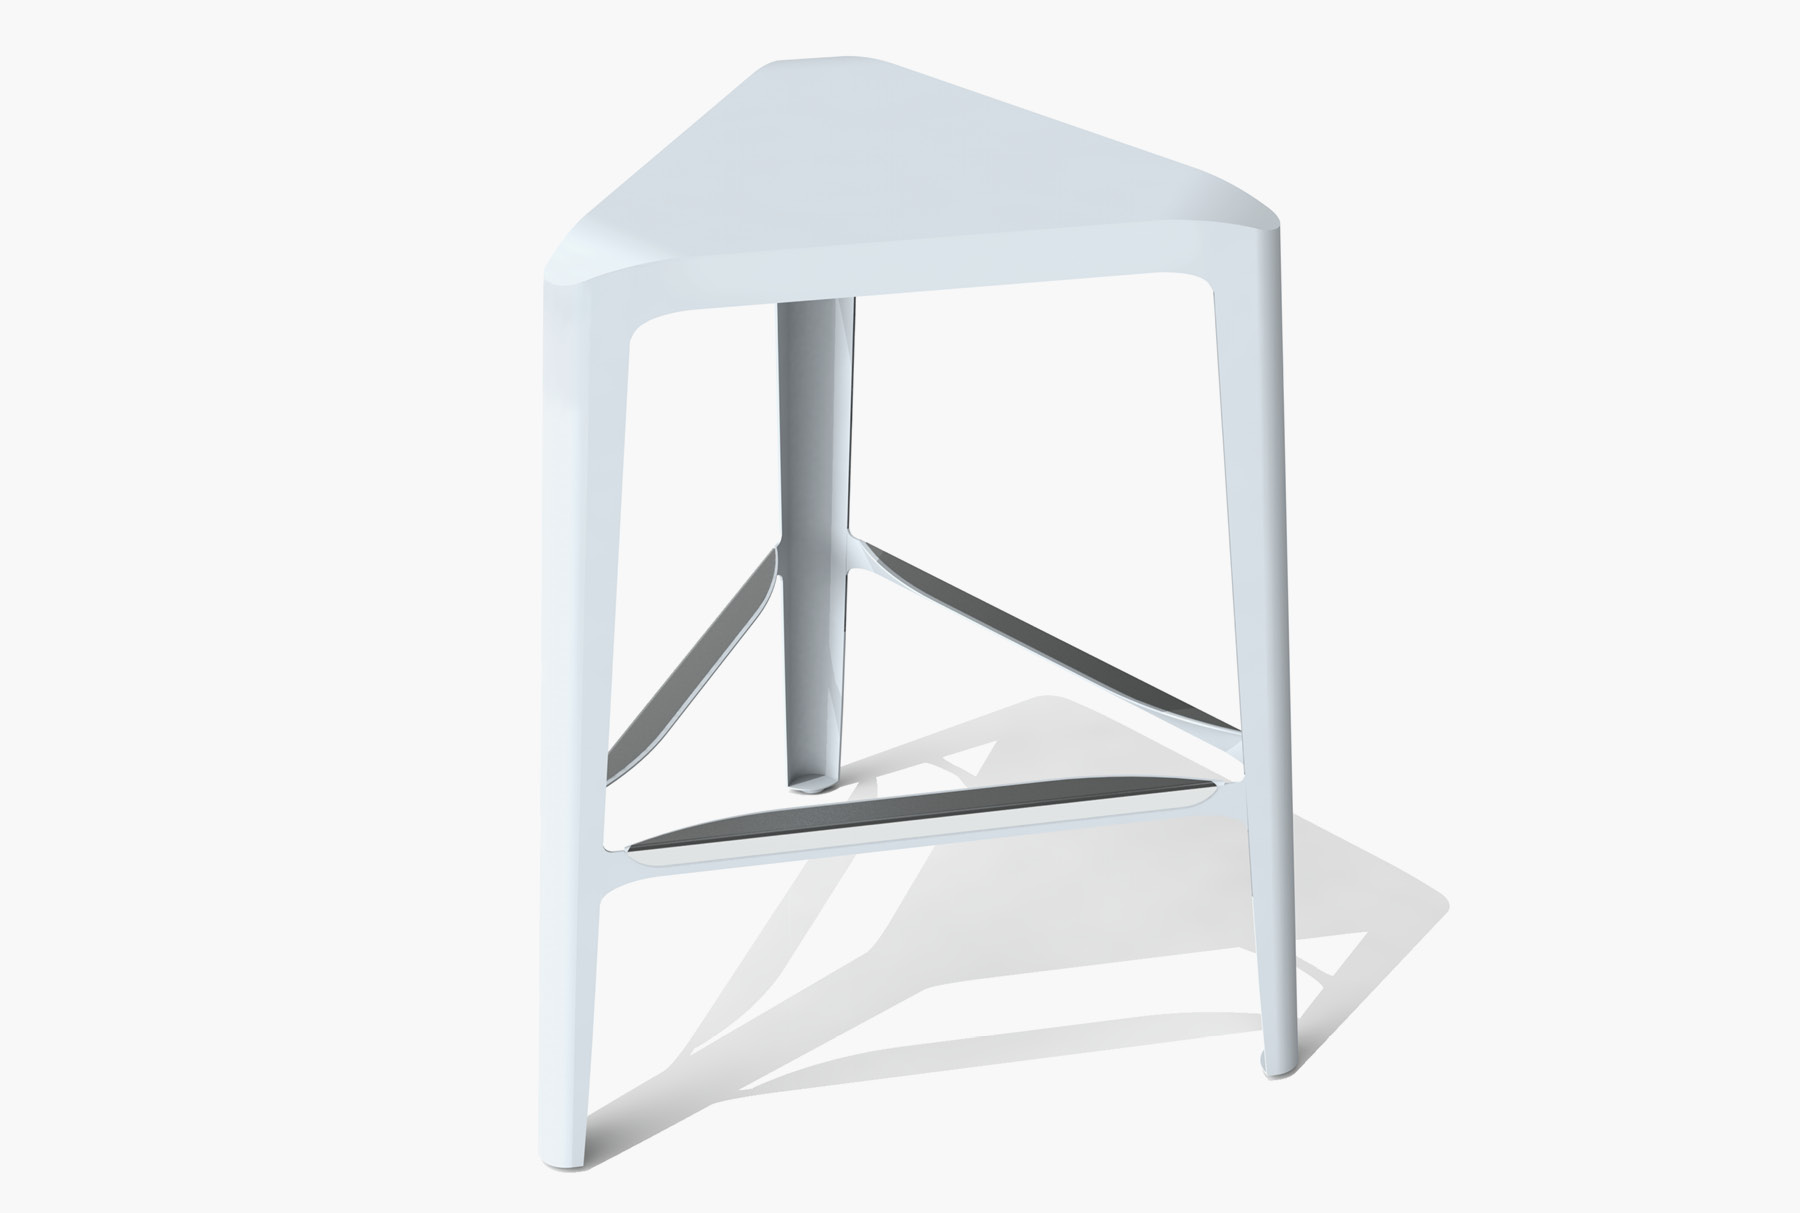 Arktura Clic Mid Stool in Glacier Gray